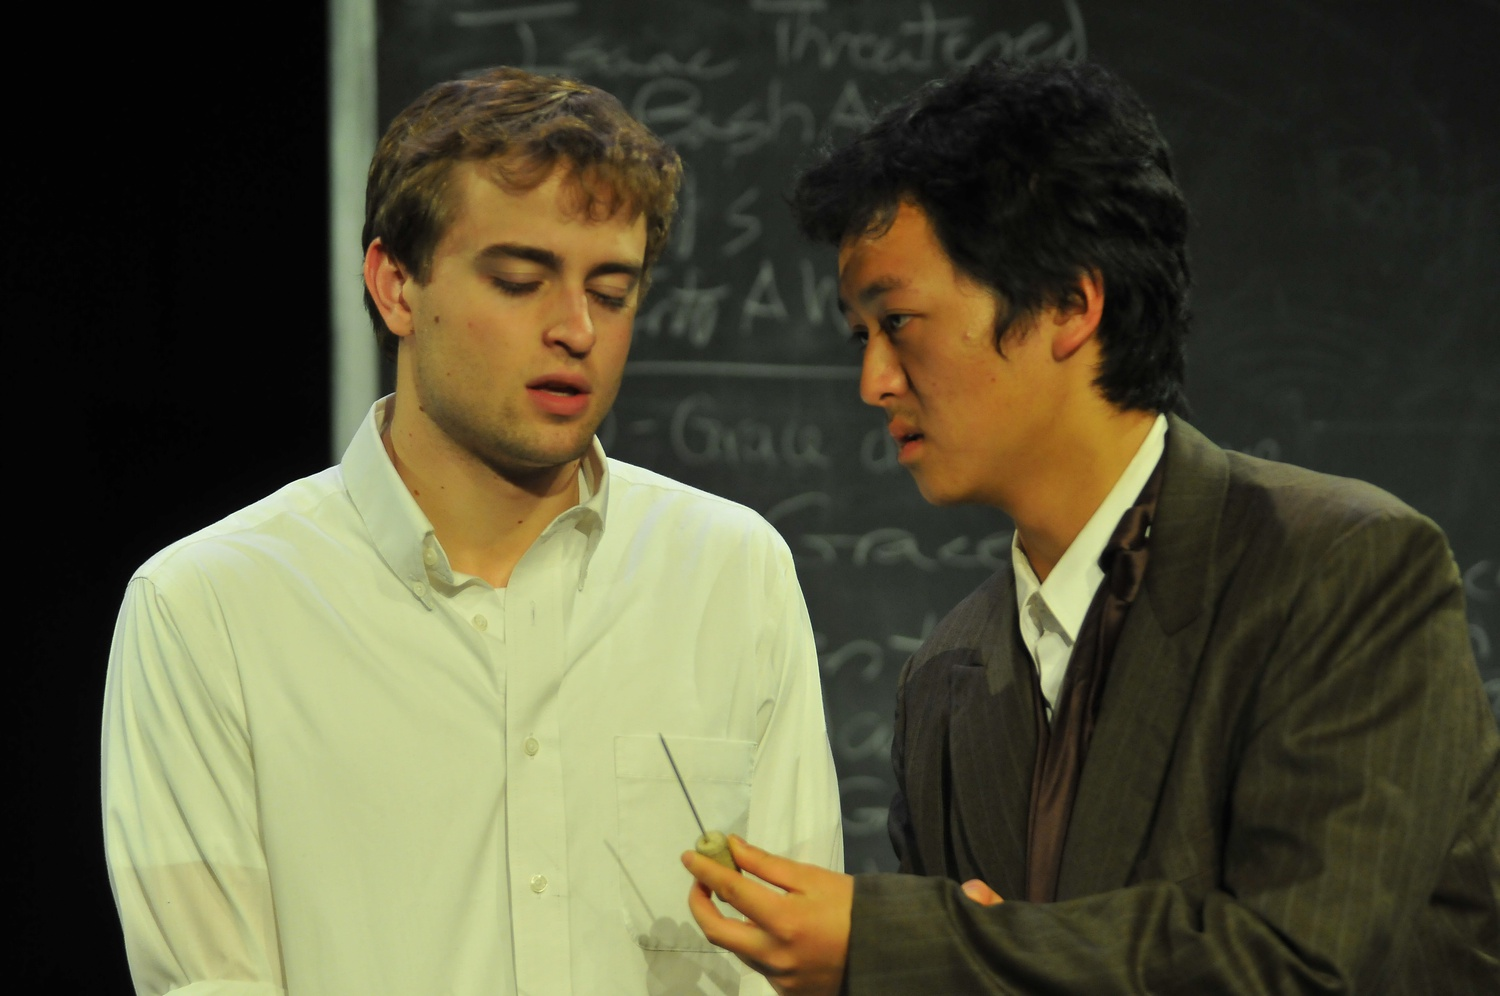 Robert Hooke convinces Isaac Newton to stick a needle in his eye. The play, featuring the two famous historical figures in a fictional setting, took place in Adams Pool Theater.